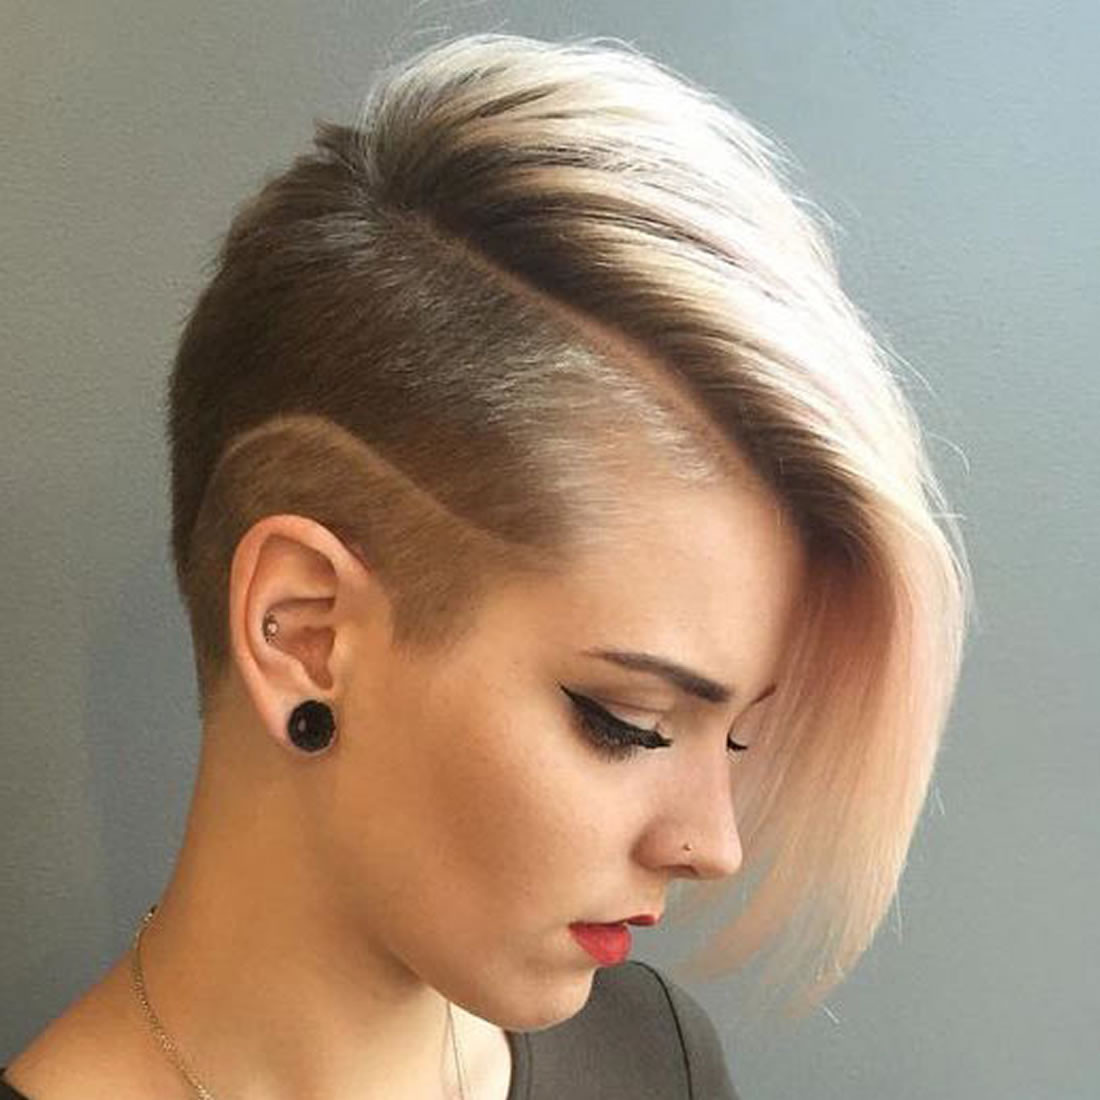 Best ideas about Undercut Hairstyles 2019 . Save or Pin 2018 Undercut Short Bob Hairstyles and Haircuts for Women Now.